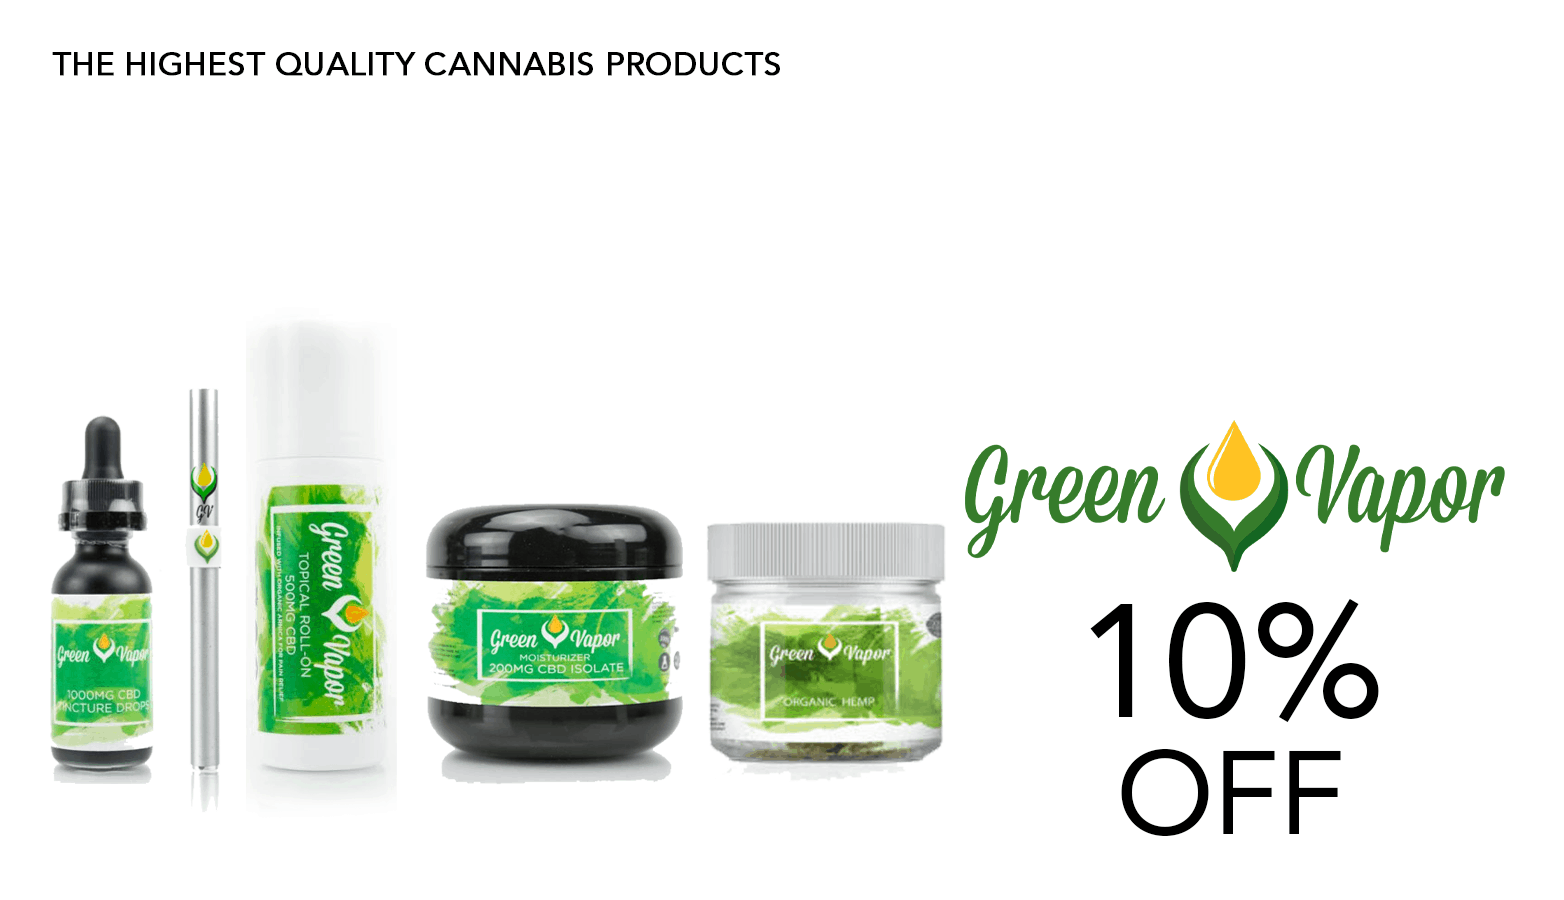 Green Vapor CBD Coupon Code Offer Website